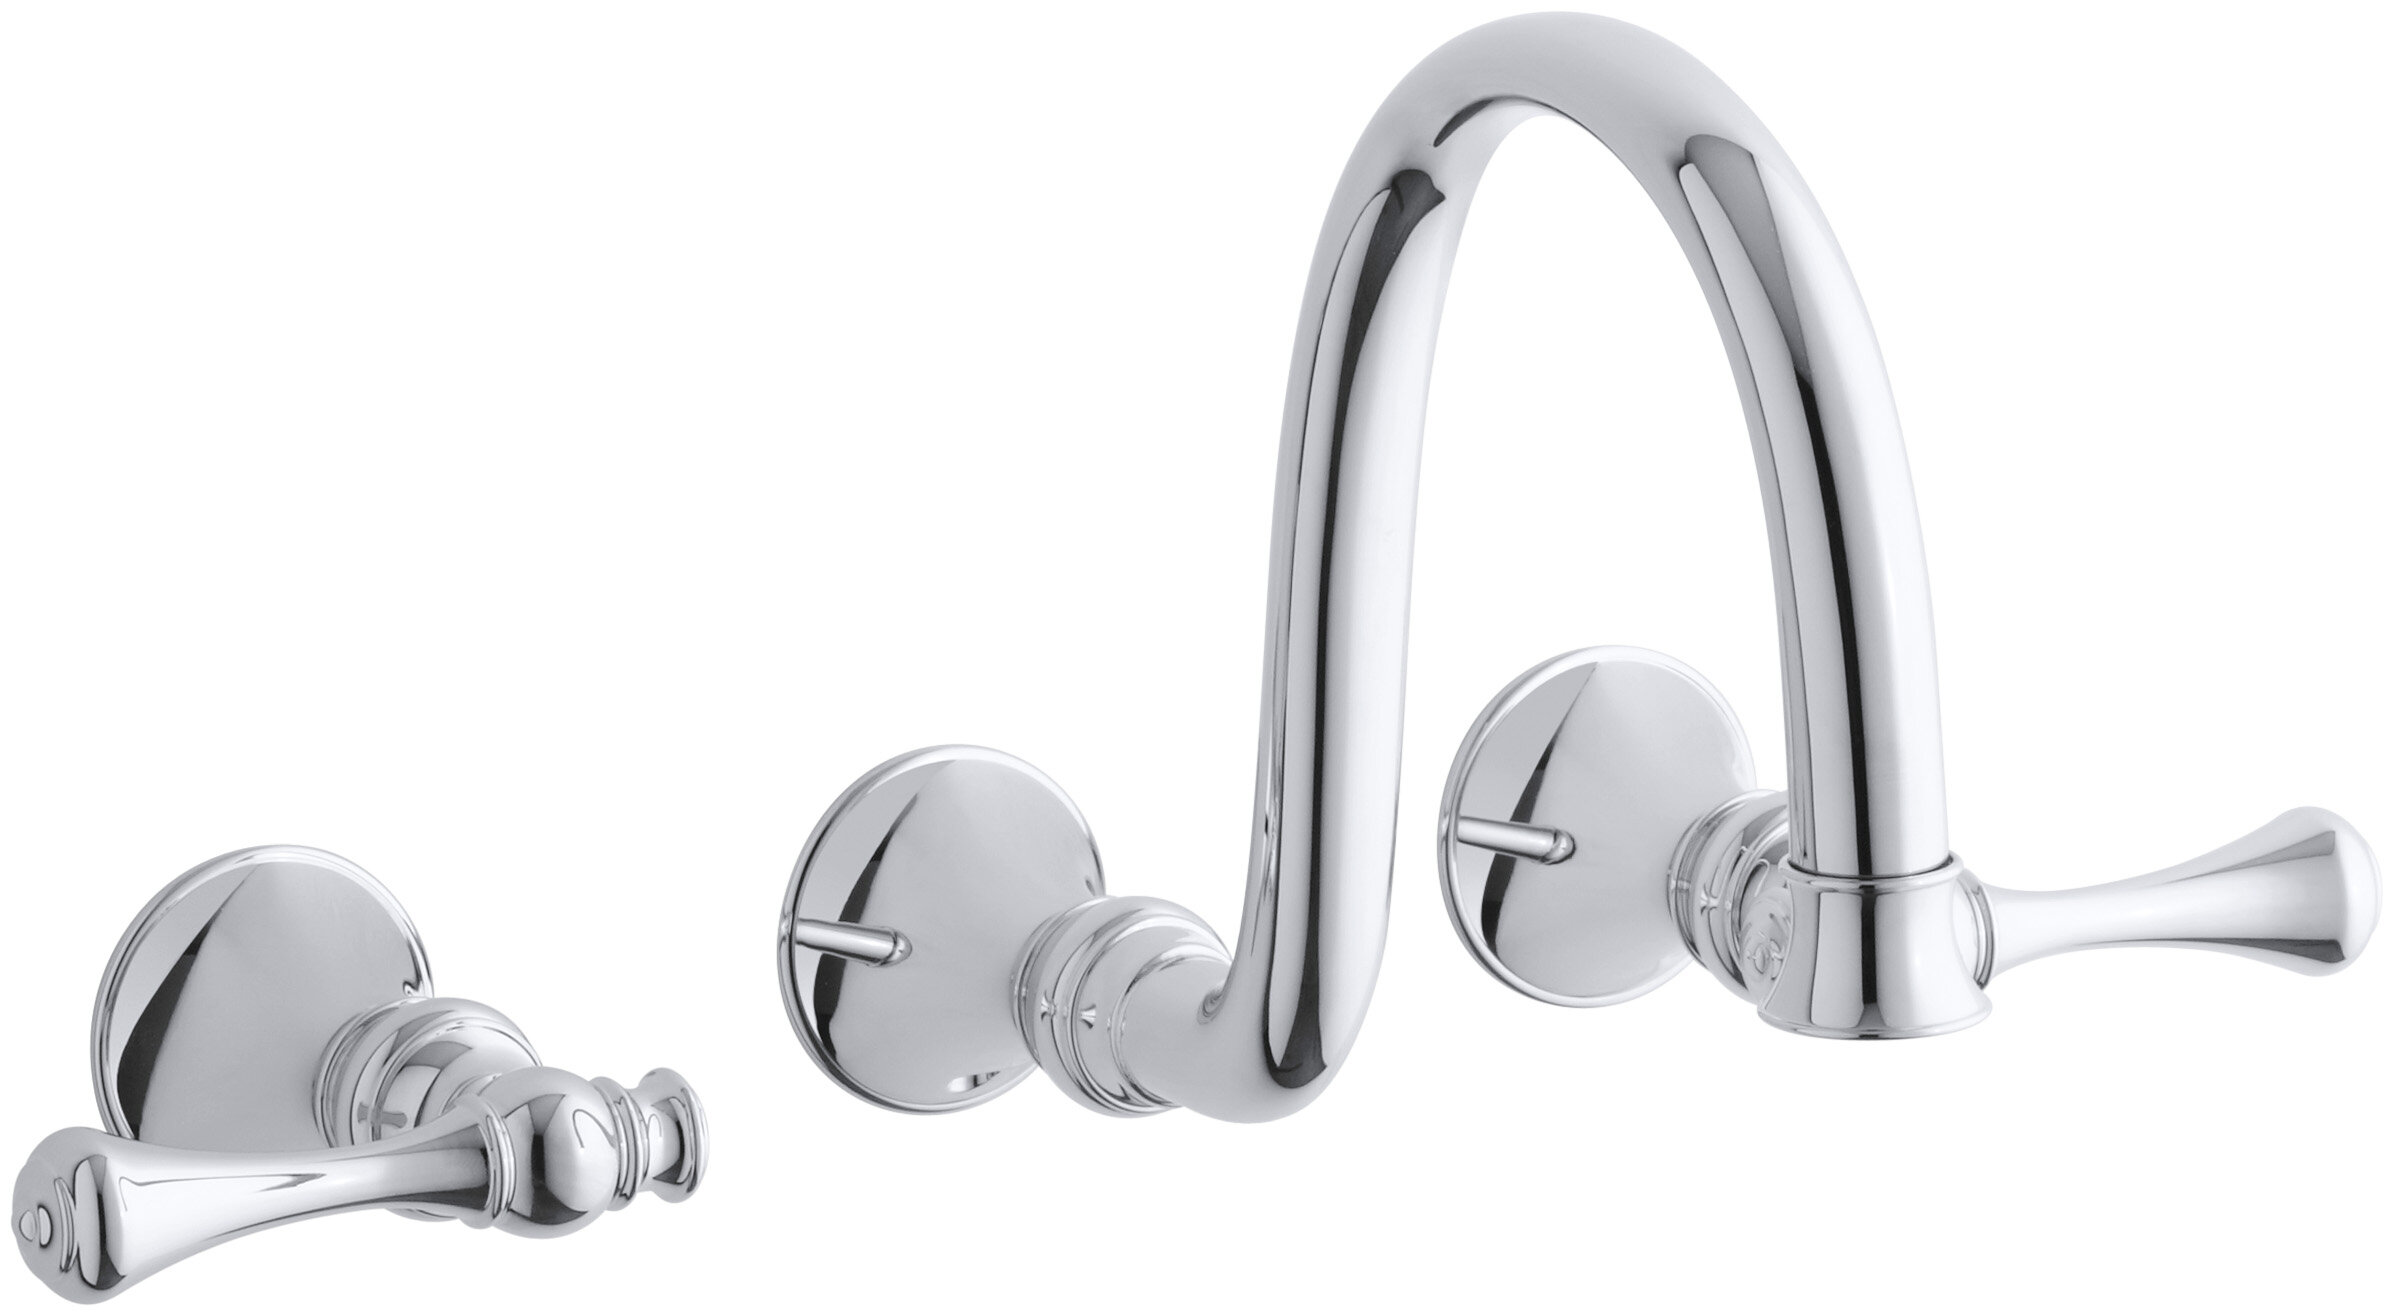 Kohler Revival Wall Mount Bathroom Sink Faucet Trim With Traditional Lever Handles And 9 Spout Requires Valve Wayfair